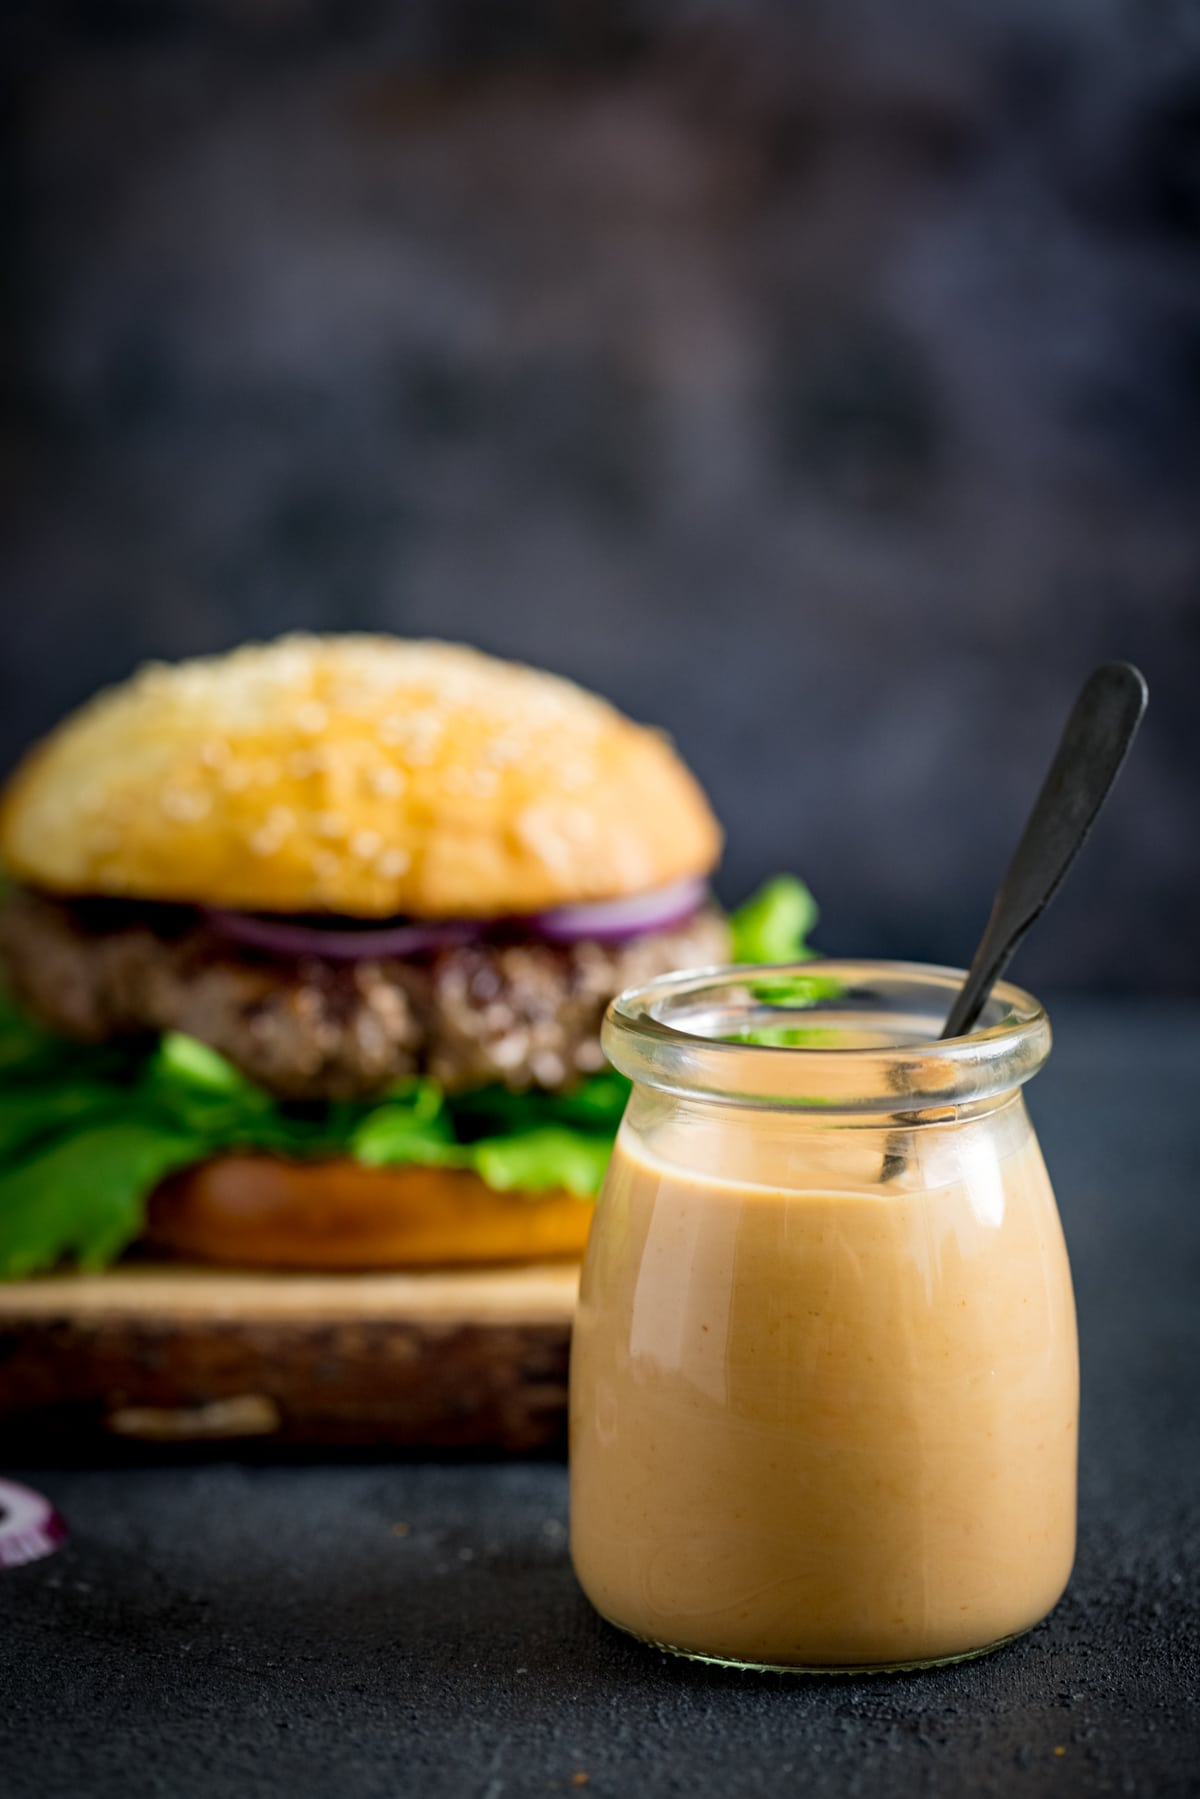 Burger sauce in a glass jar against a dark background. There is a burger in the background.